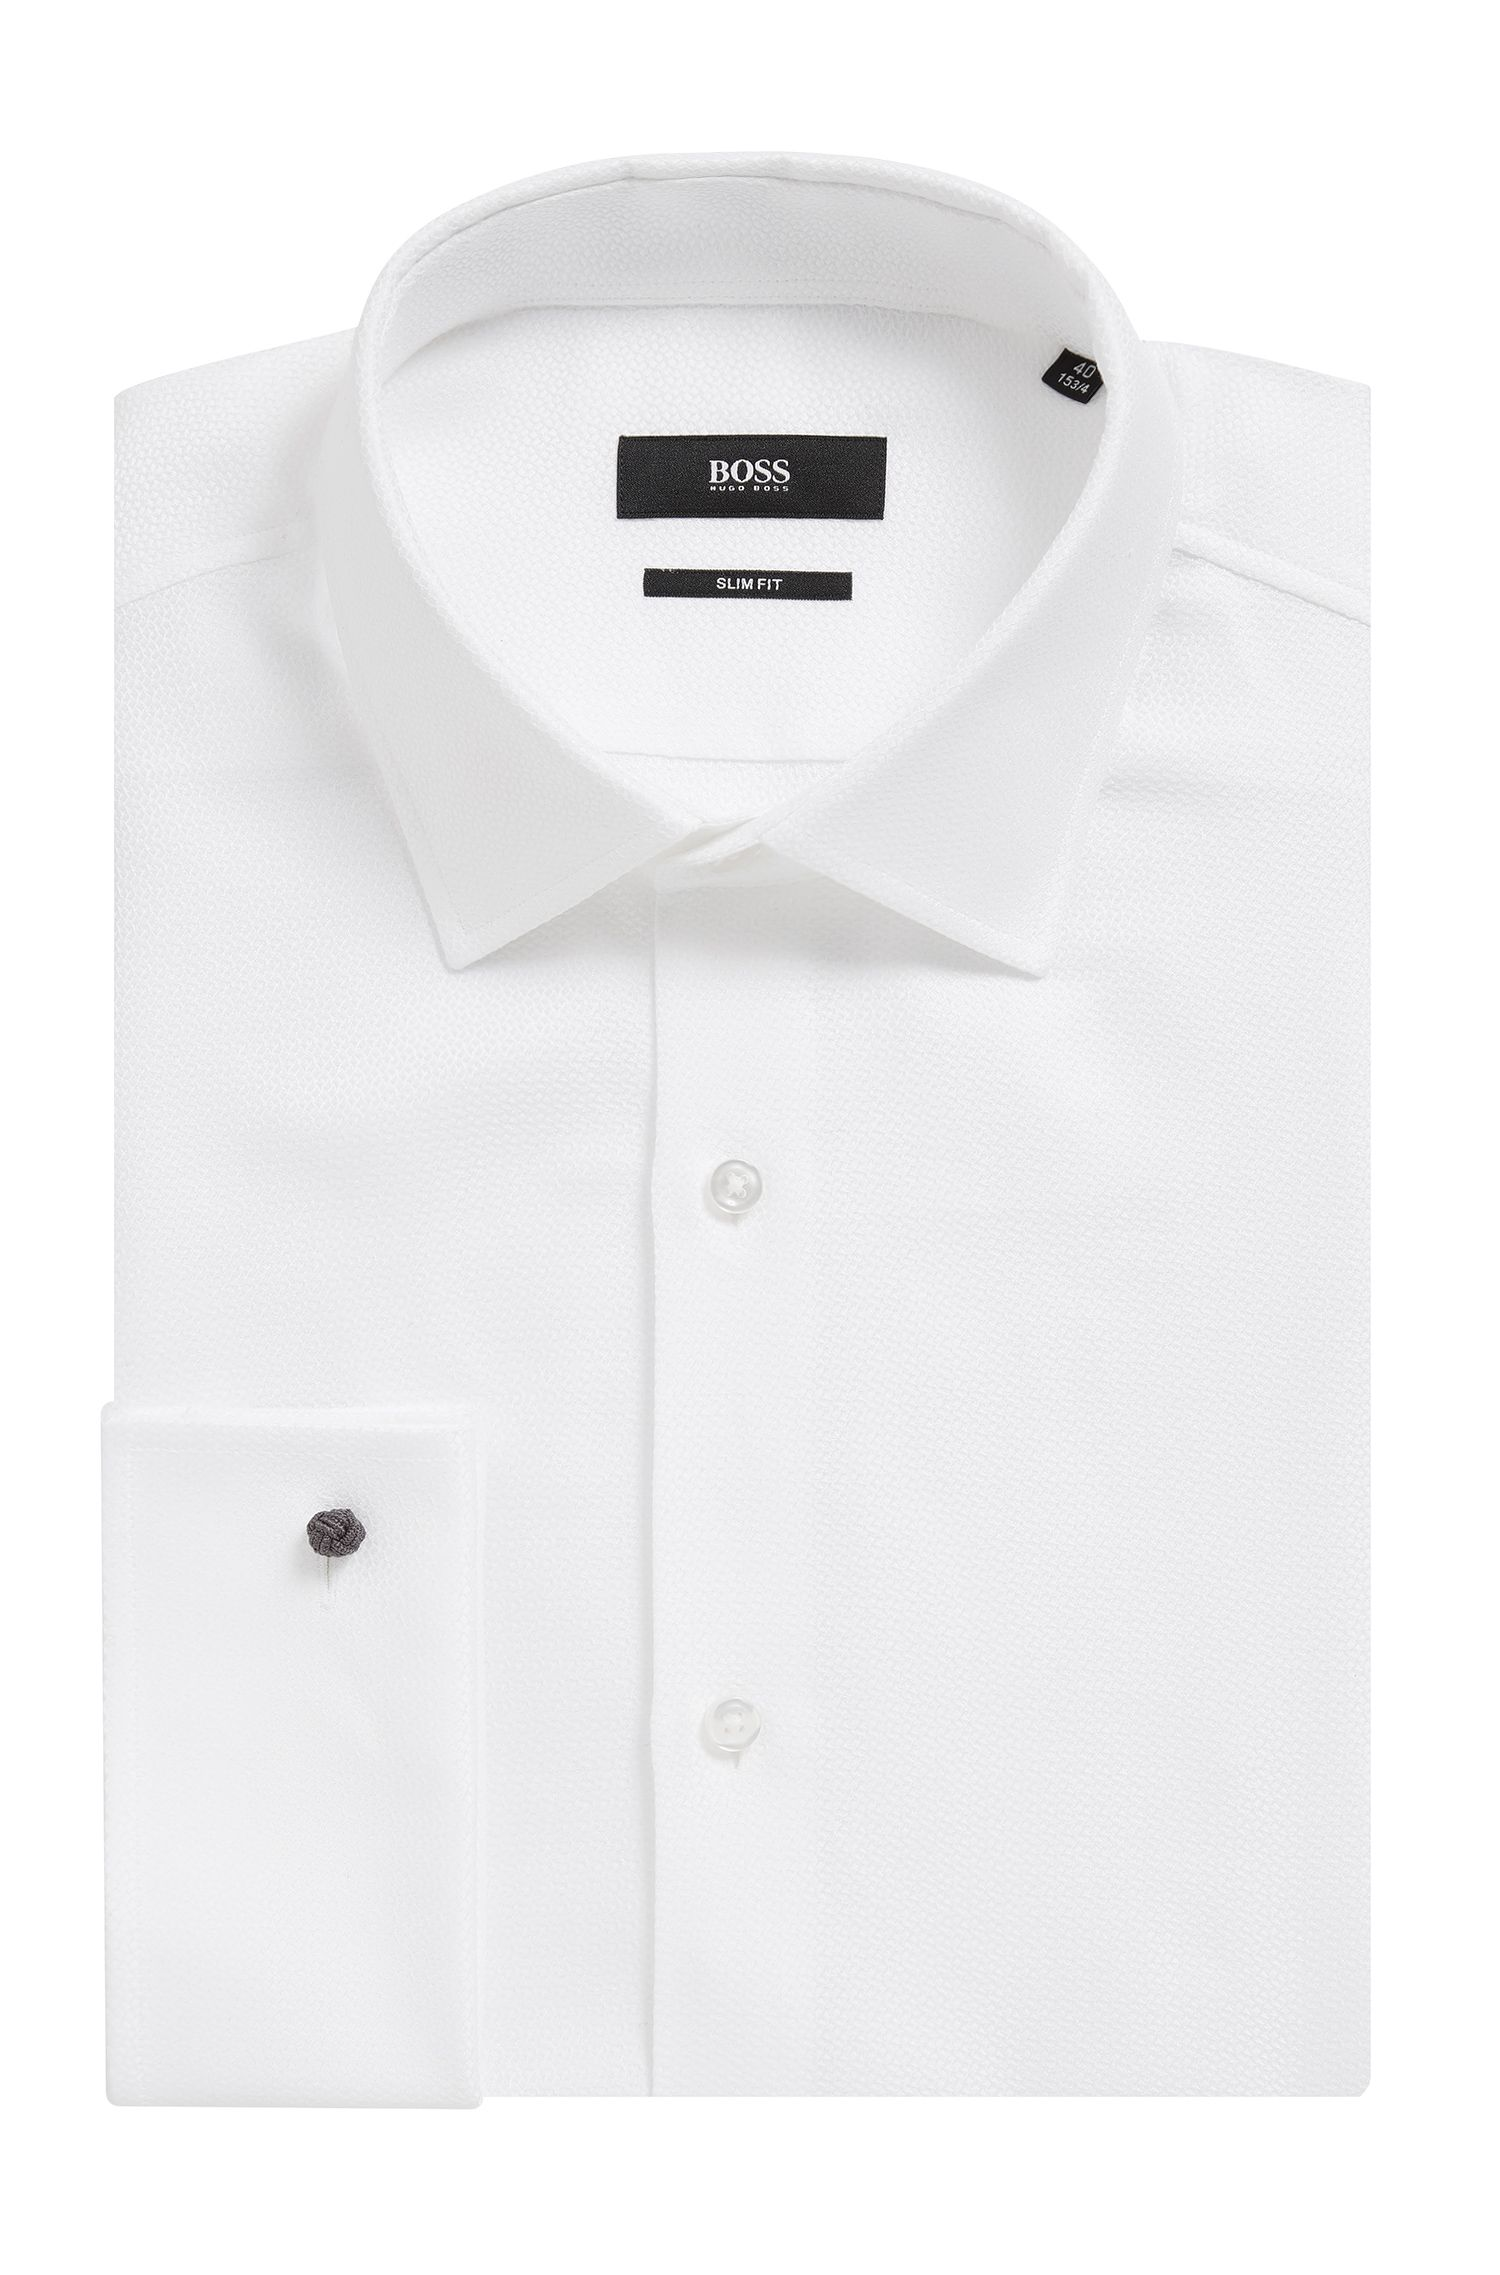 Dobby Cotton Shirt, Slim Fit | Jacques , White